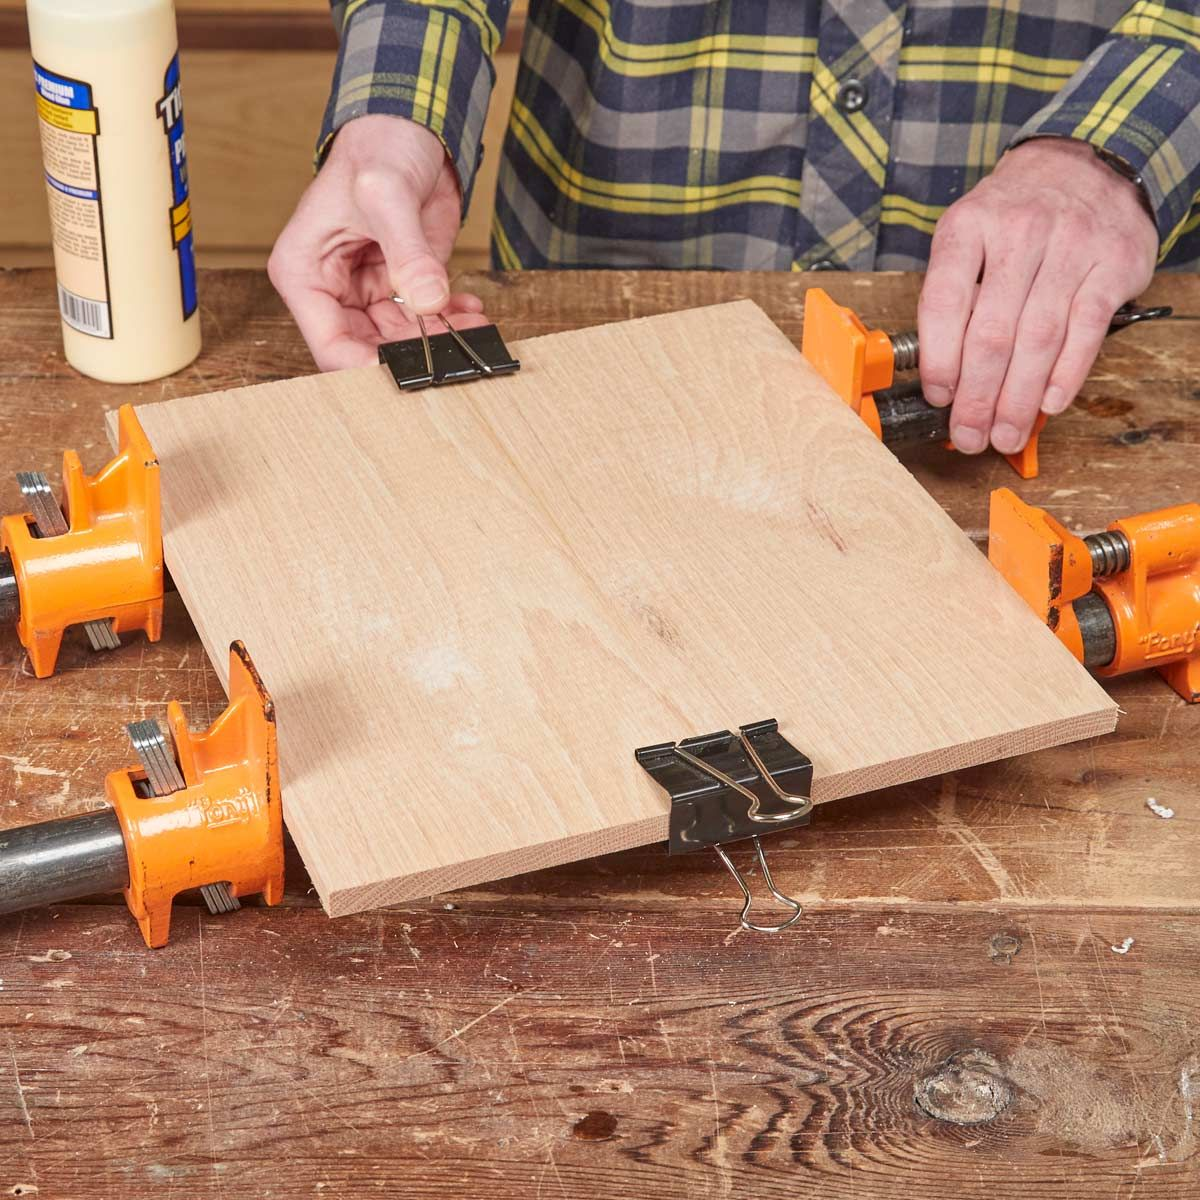 binder clips make perfect mini clamps for glue-ups